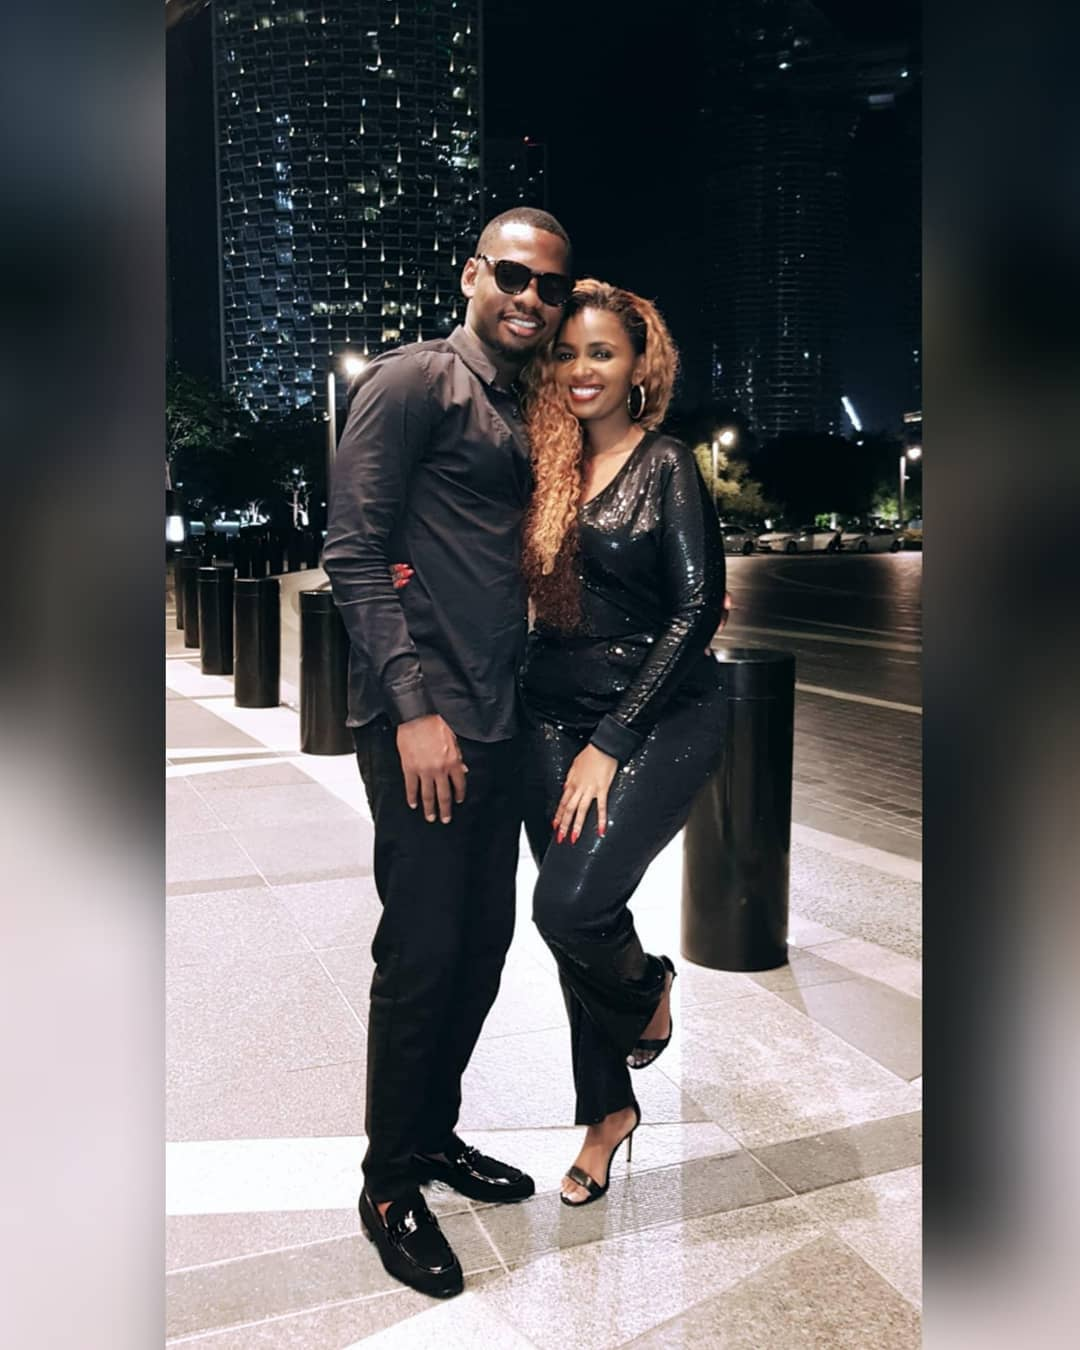 Ben Pol and Anerlisa posing together - Bonfire CEO congratulates Anerlisa and Ben Pol on her pregnancy